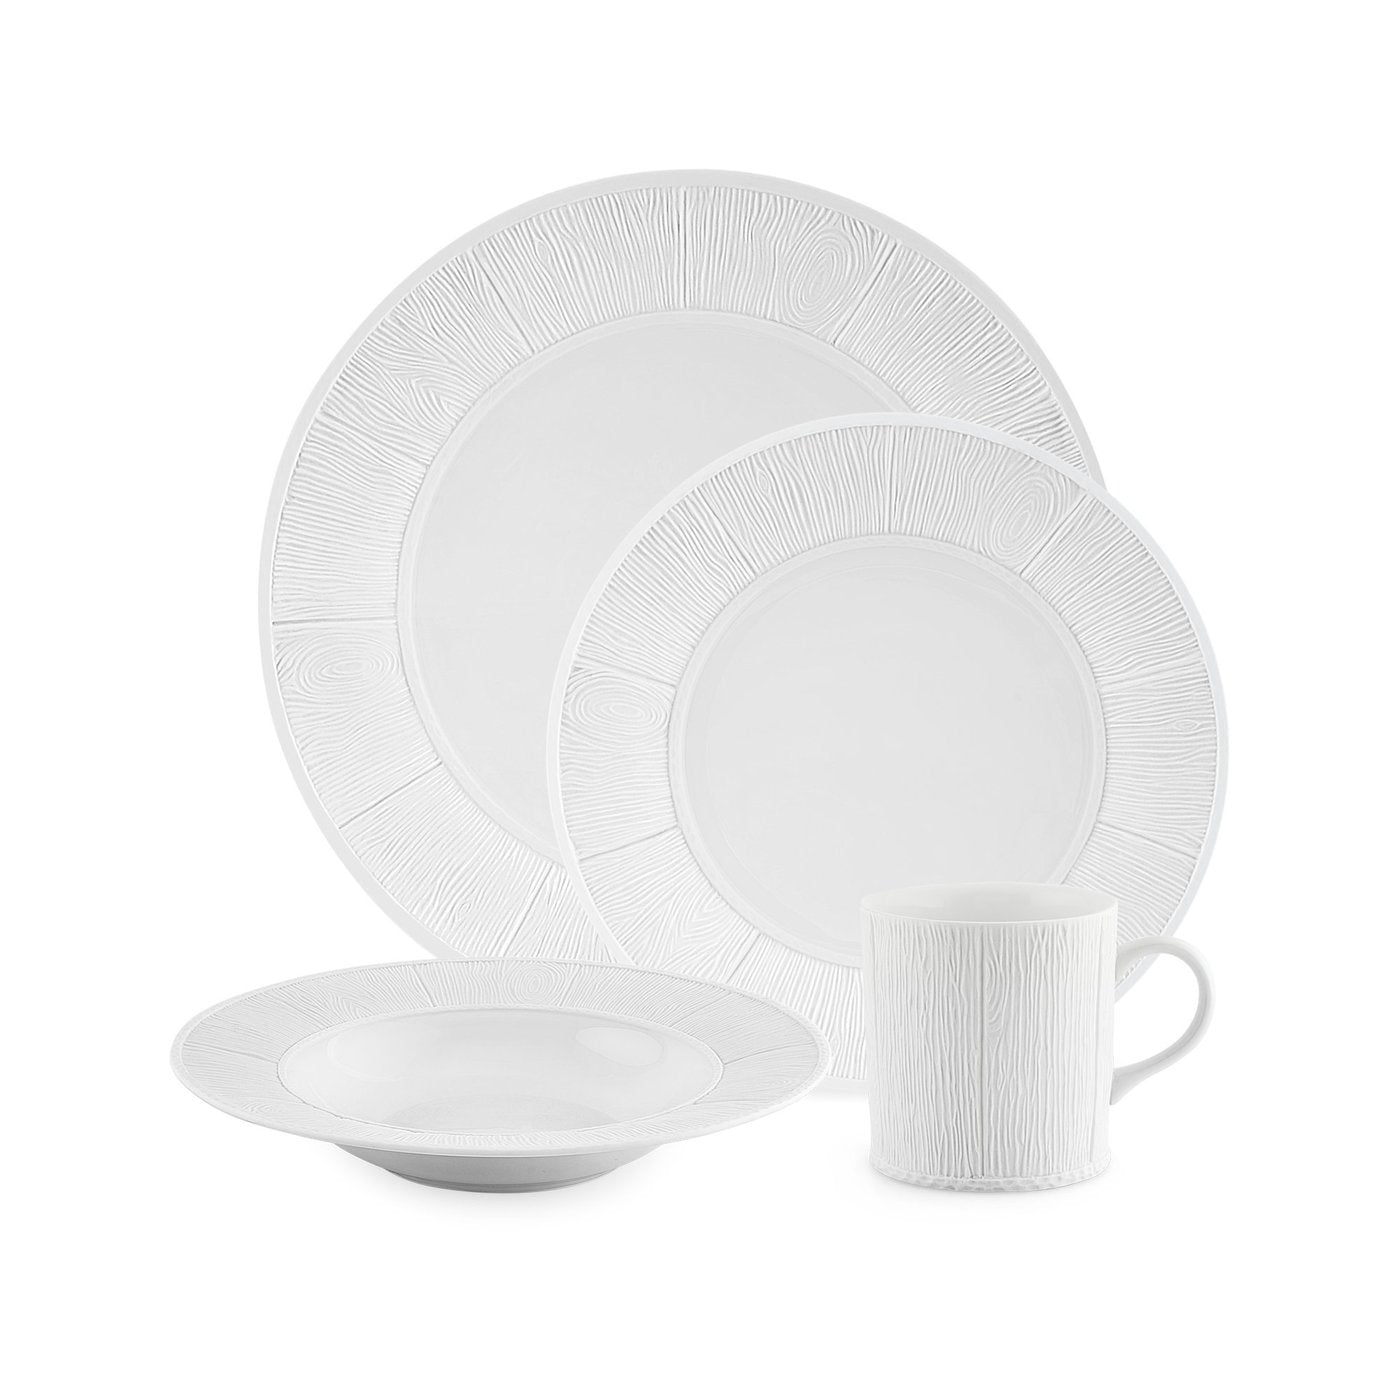 Ivy & Oak Dinnerware 4-Piece Place